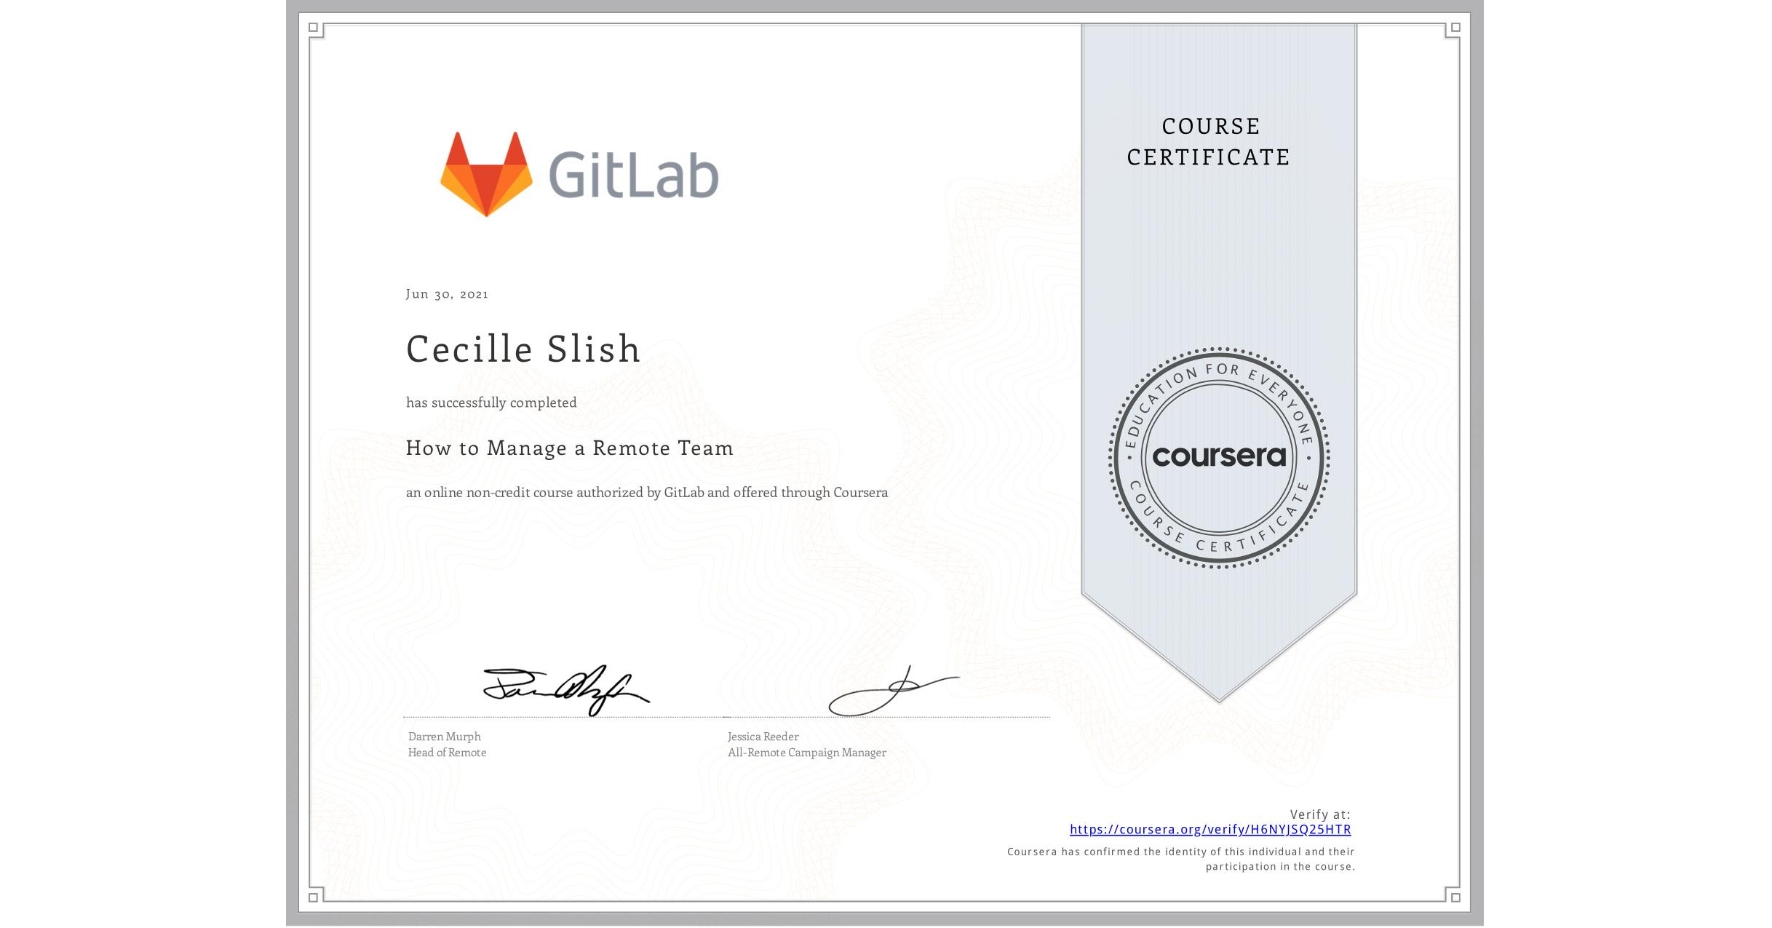 View certificate for Cecille Slish, How to Manage a Remote Team, an online non-credit course authorized by GitLab and offered through Coursera